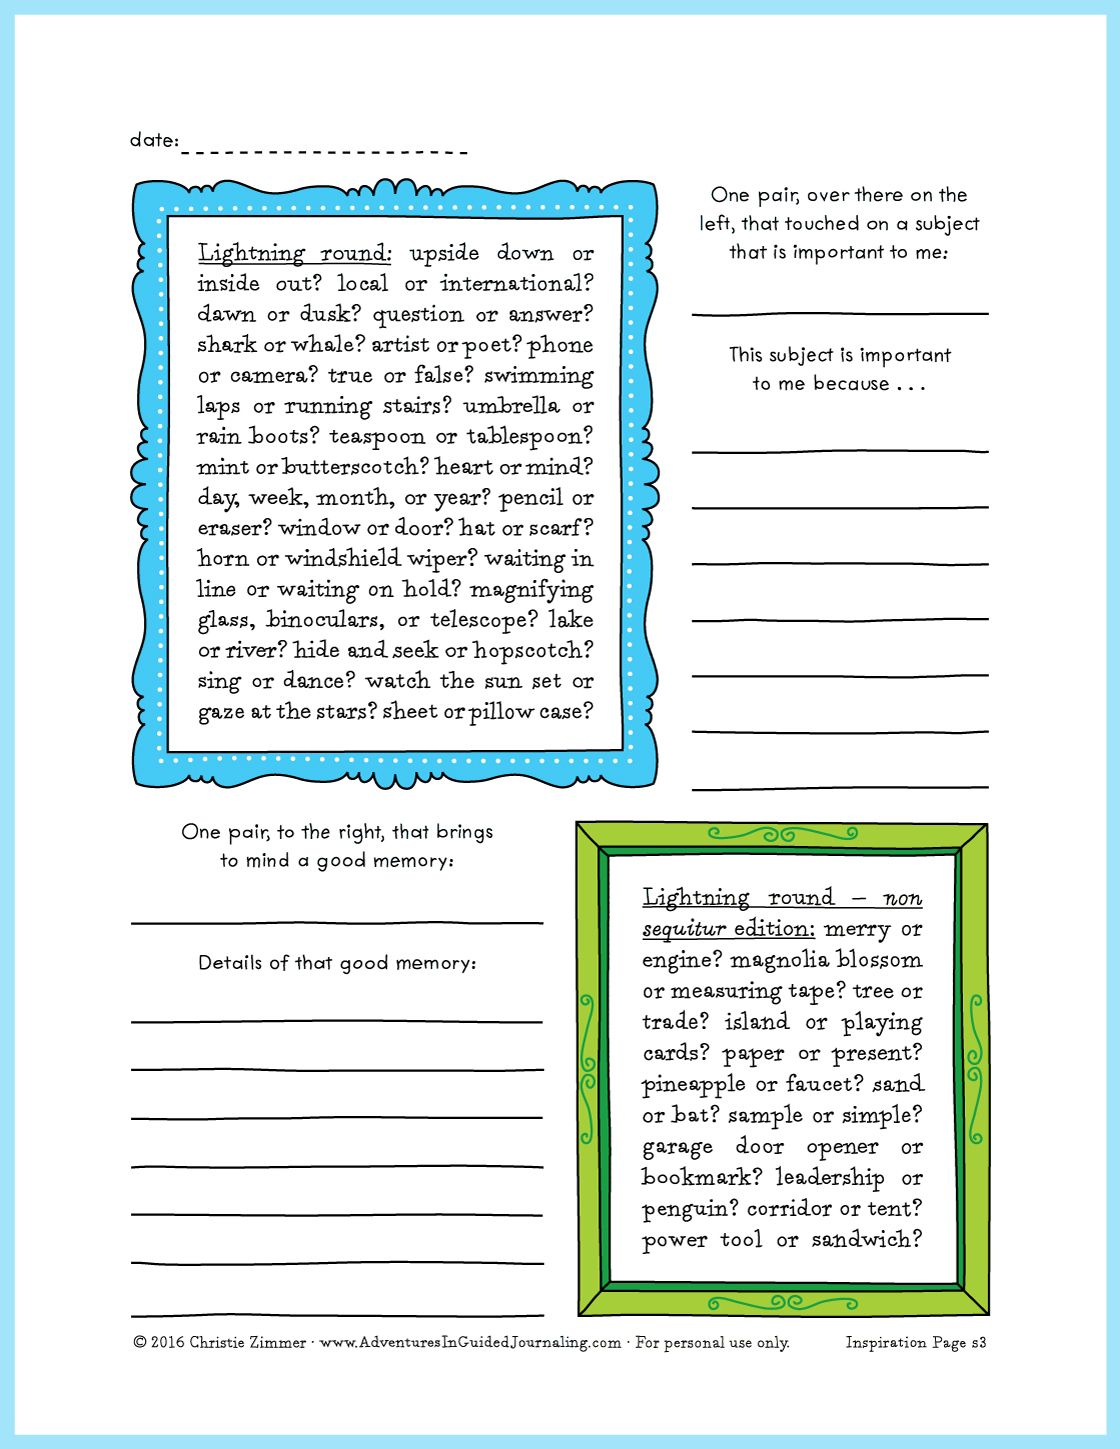 Lightning Round Printable Journal Page From Adventures In